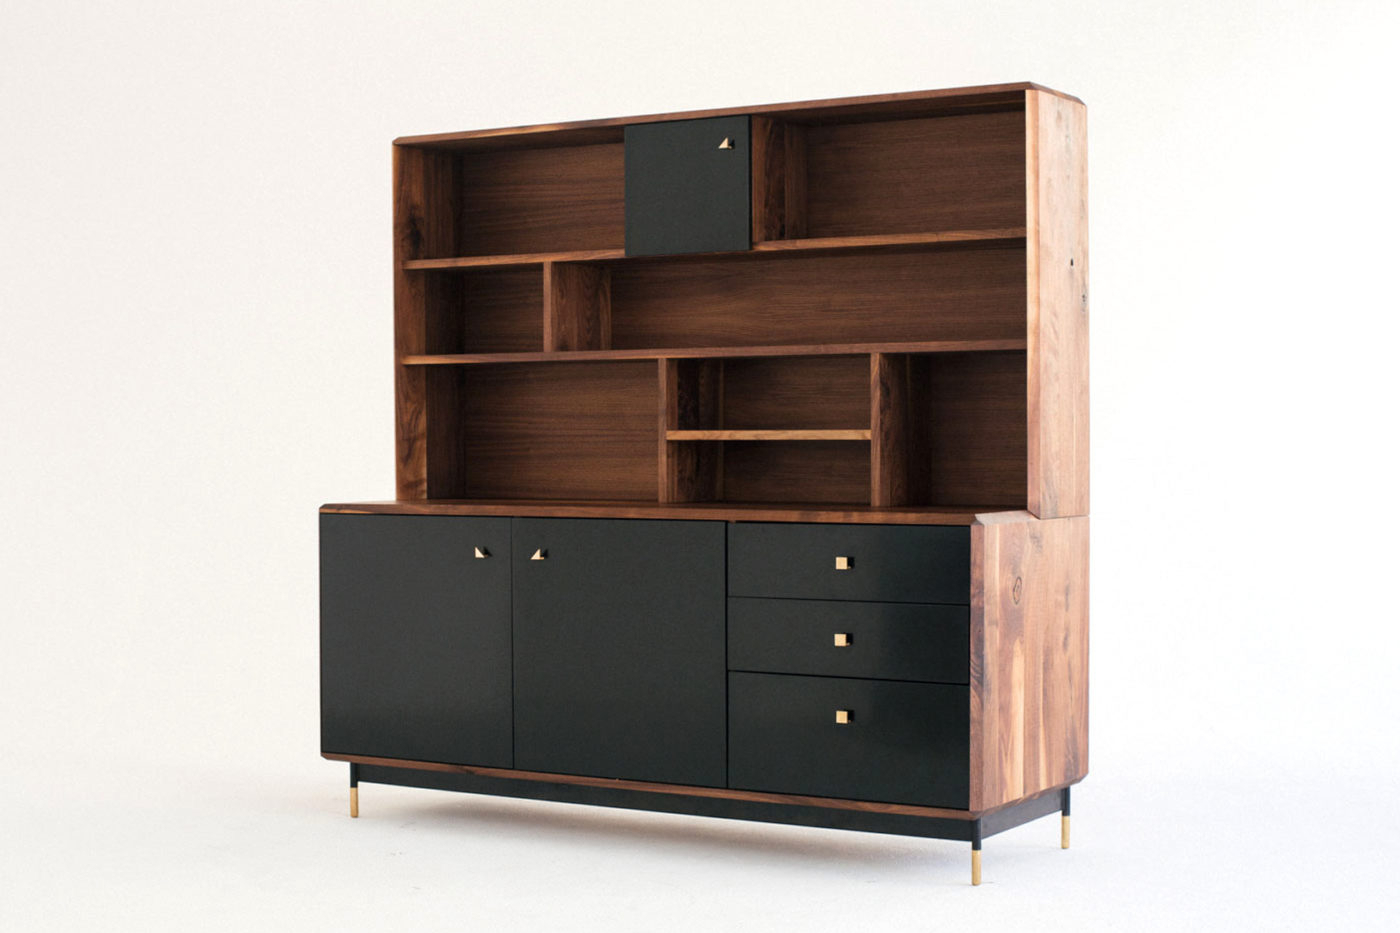 Mandelbrot Hutch Throughout Festival Eclipse Credenzas (View 14 of 20)